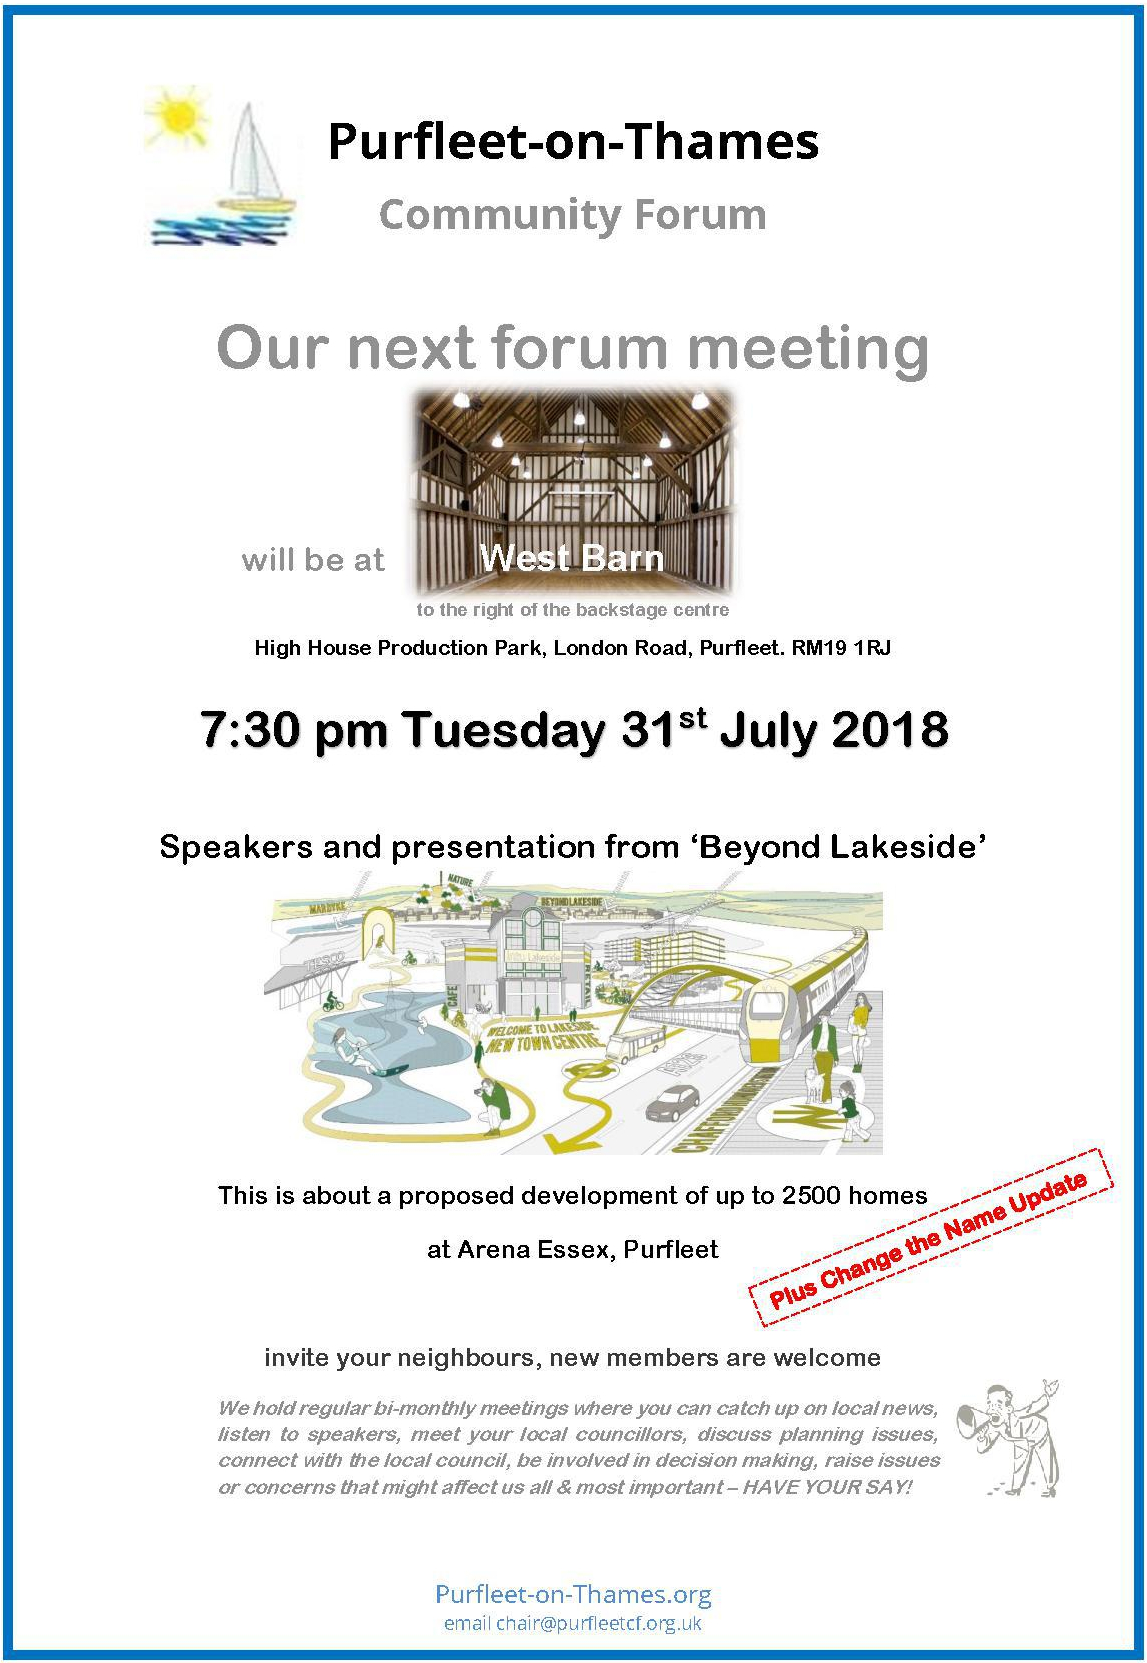 18.07.31 Forum meeting